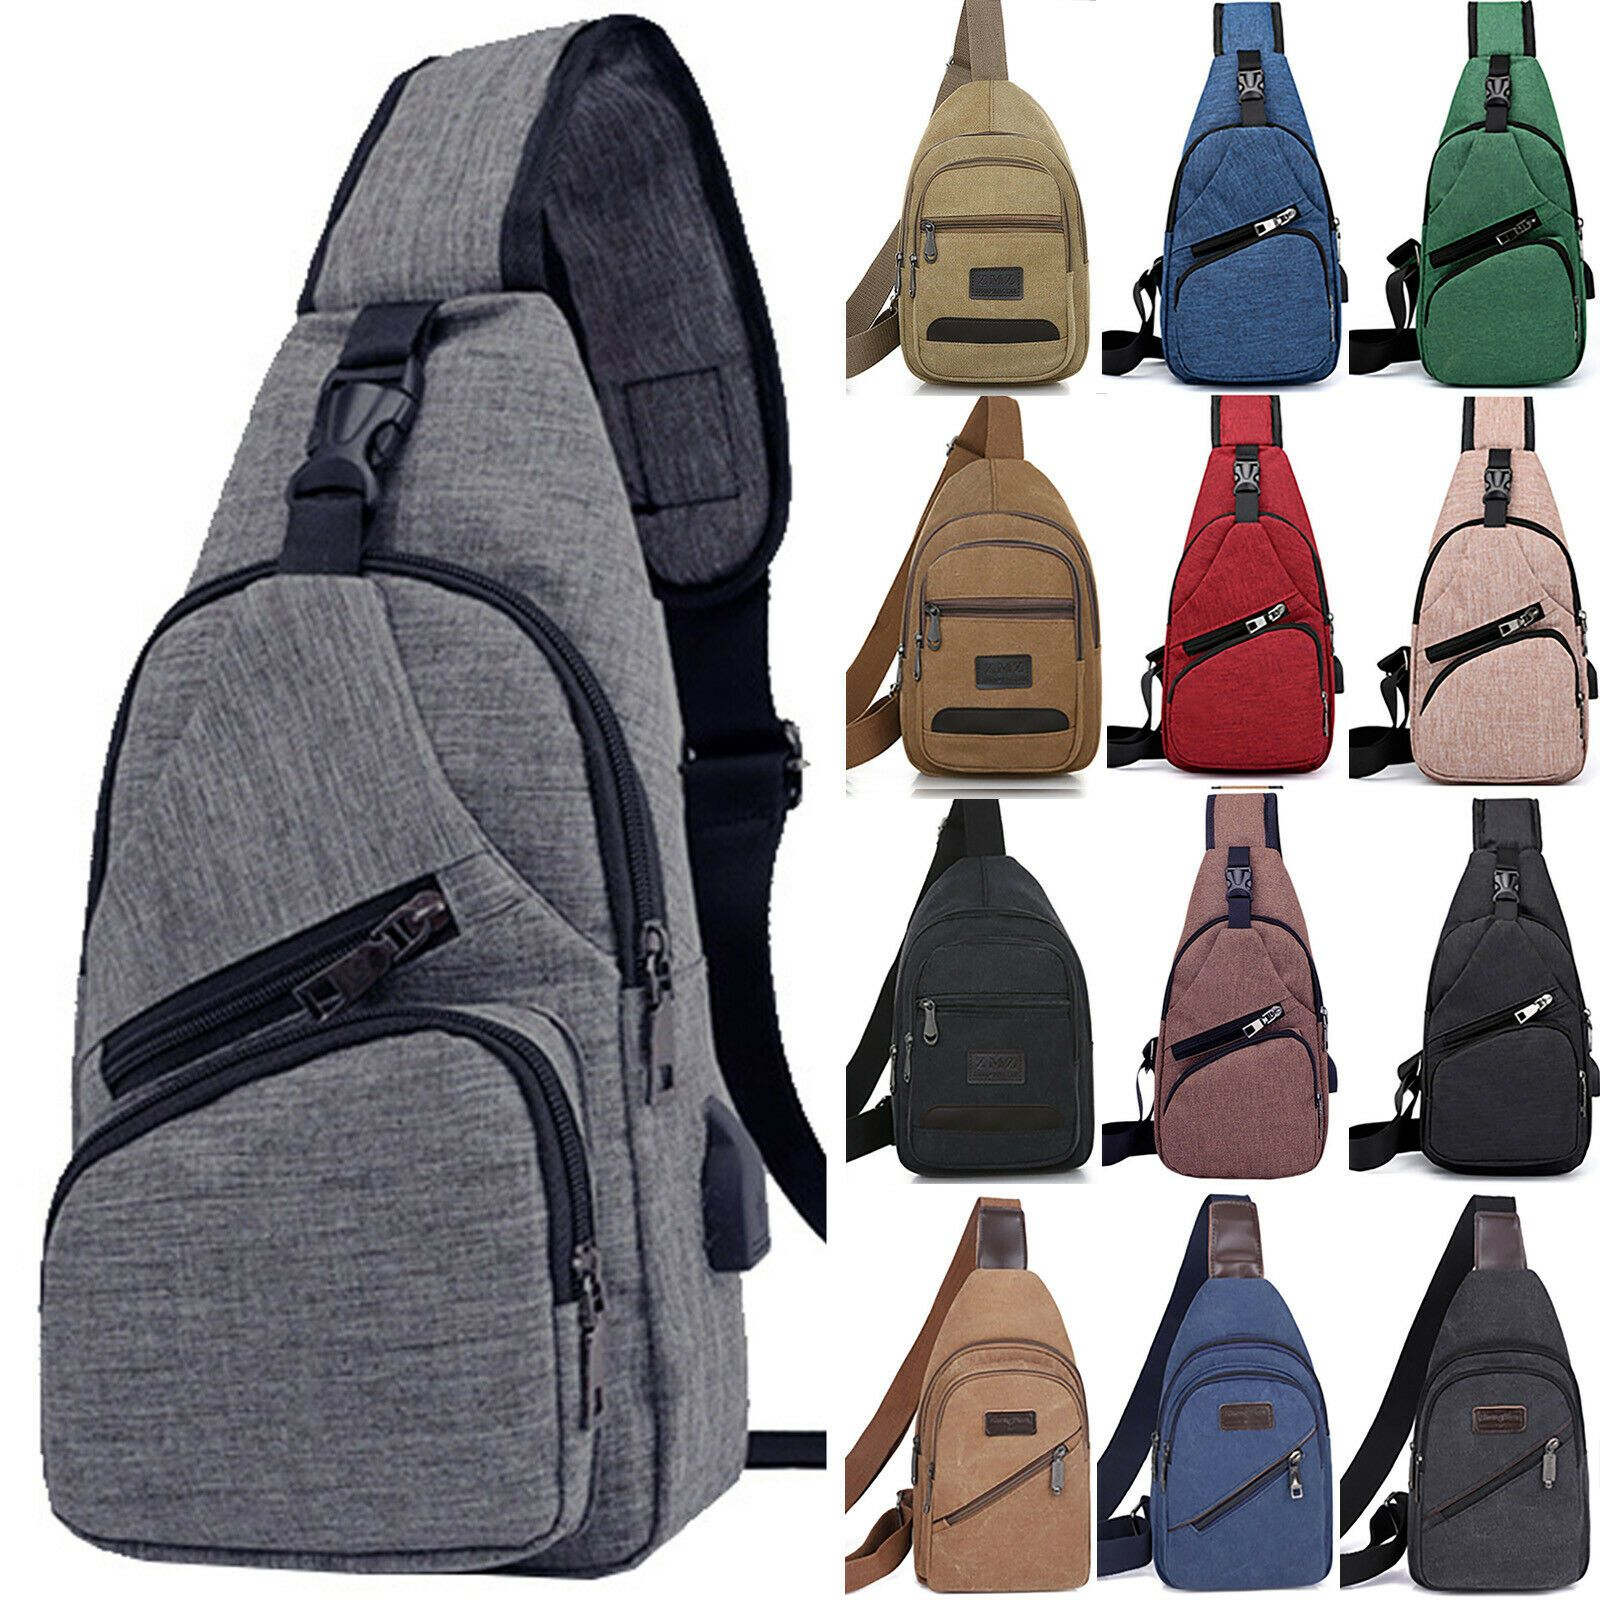 Men Women Canvas Crossbody Shoulder Chest Cycle Sling Bag Daily Travel Backpack